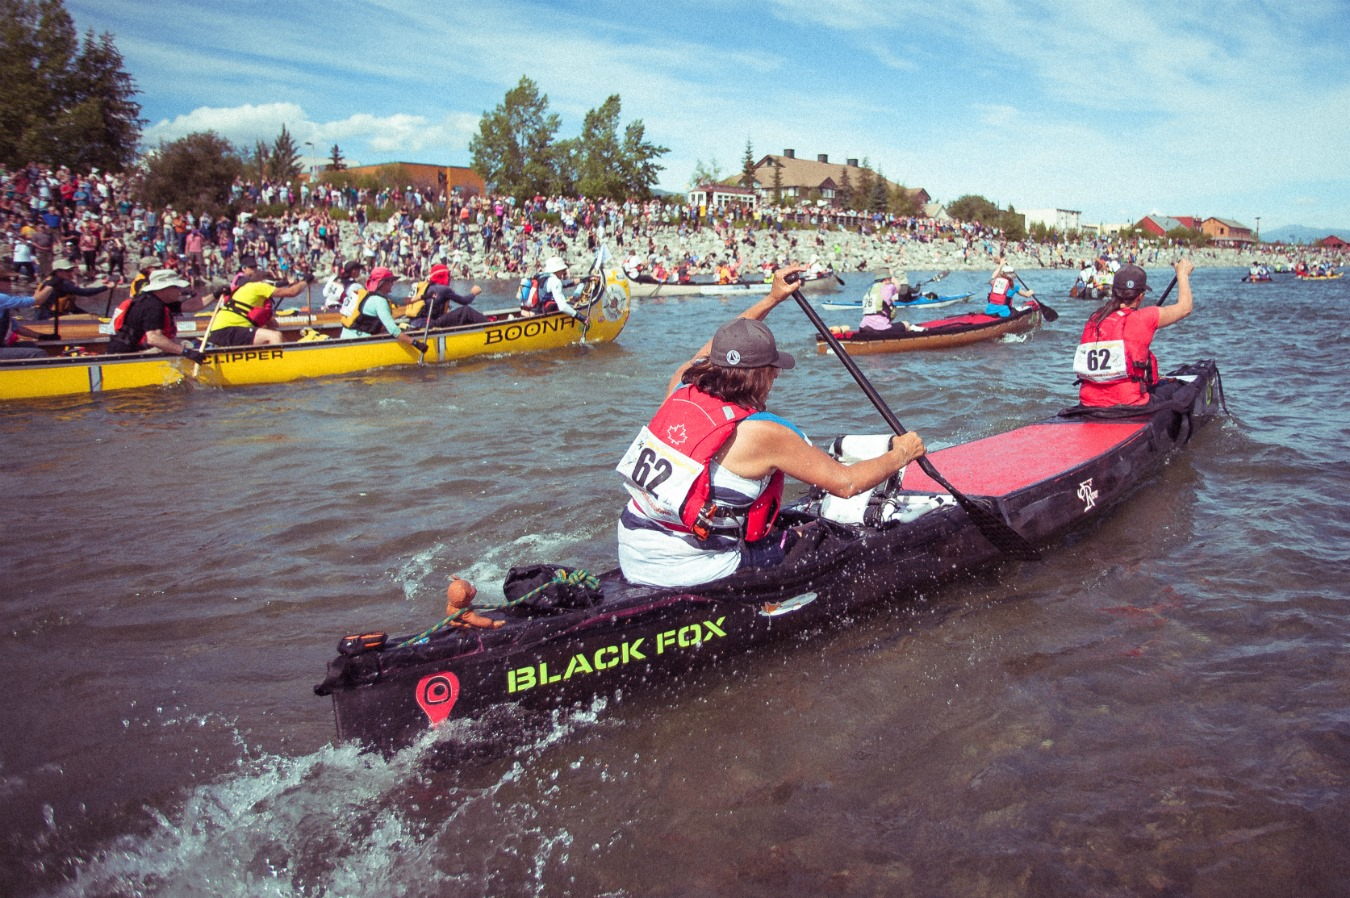 Top 5 SUP Events in the World